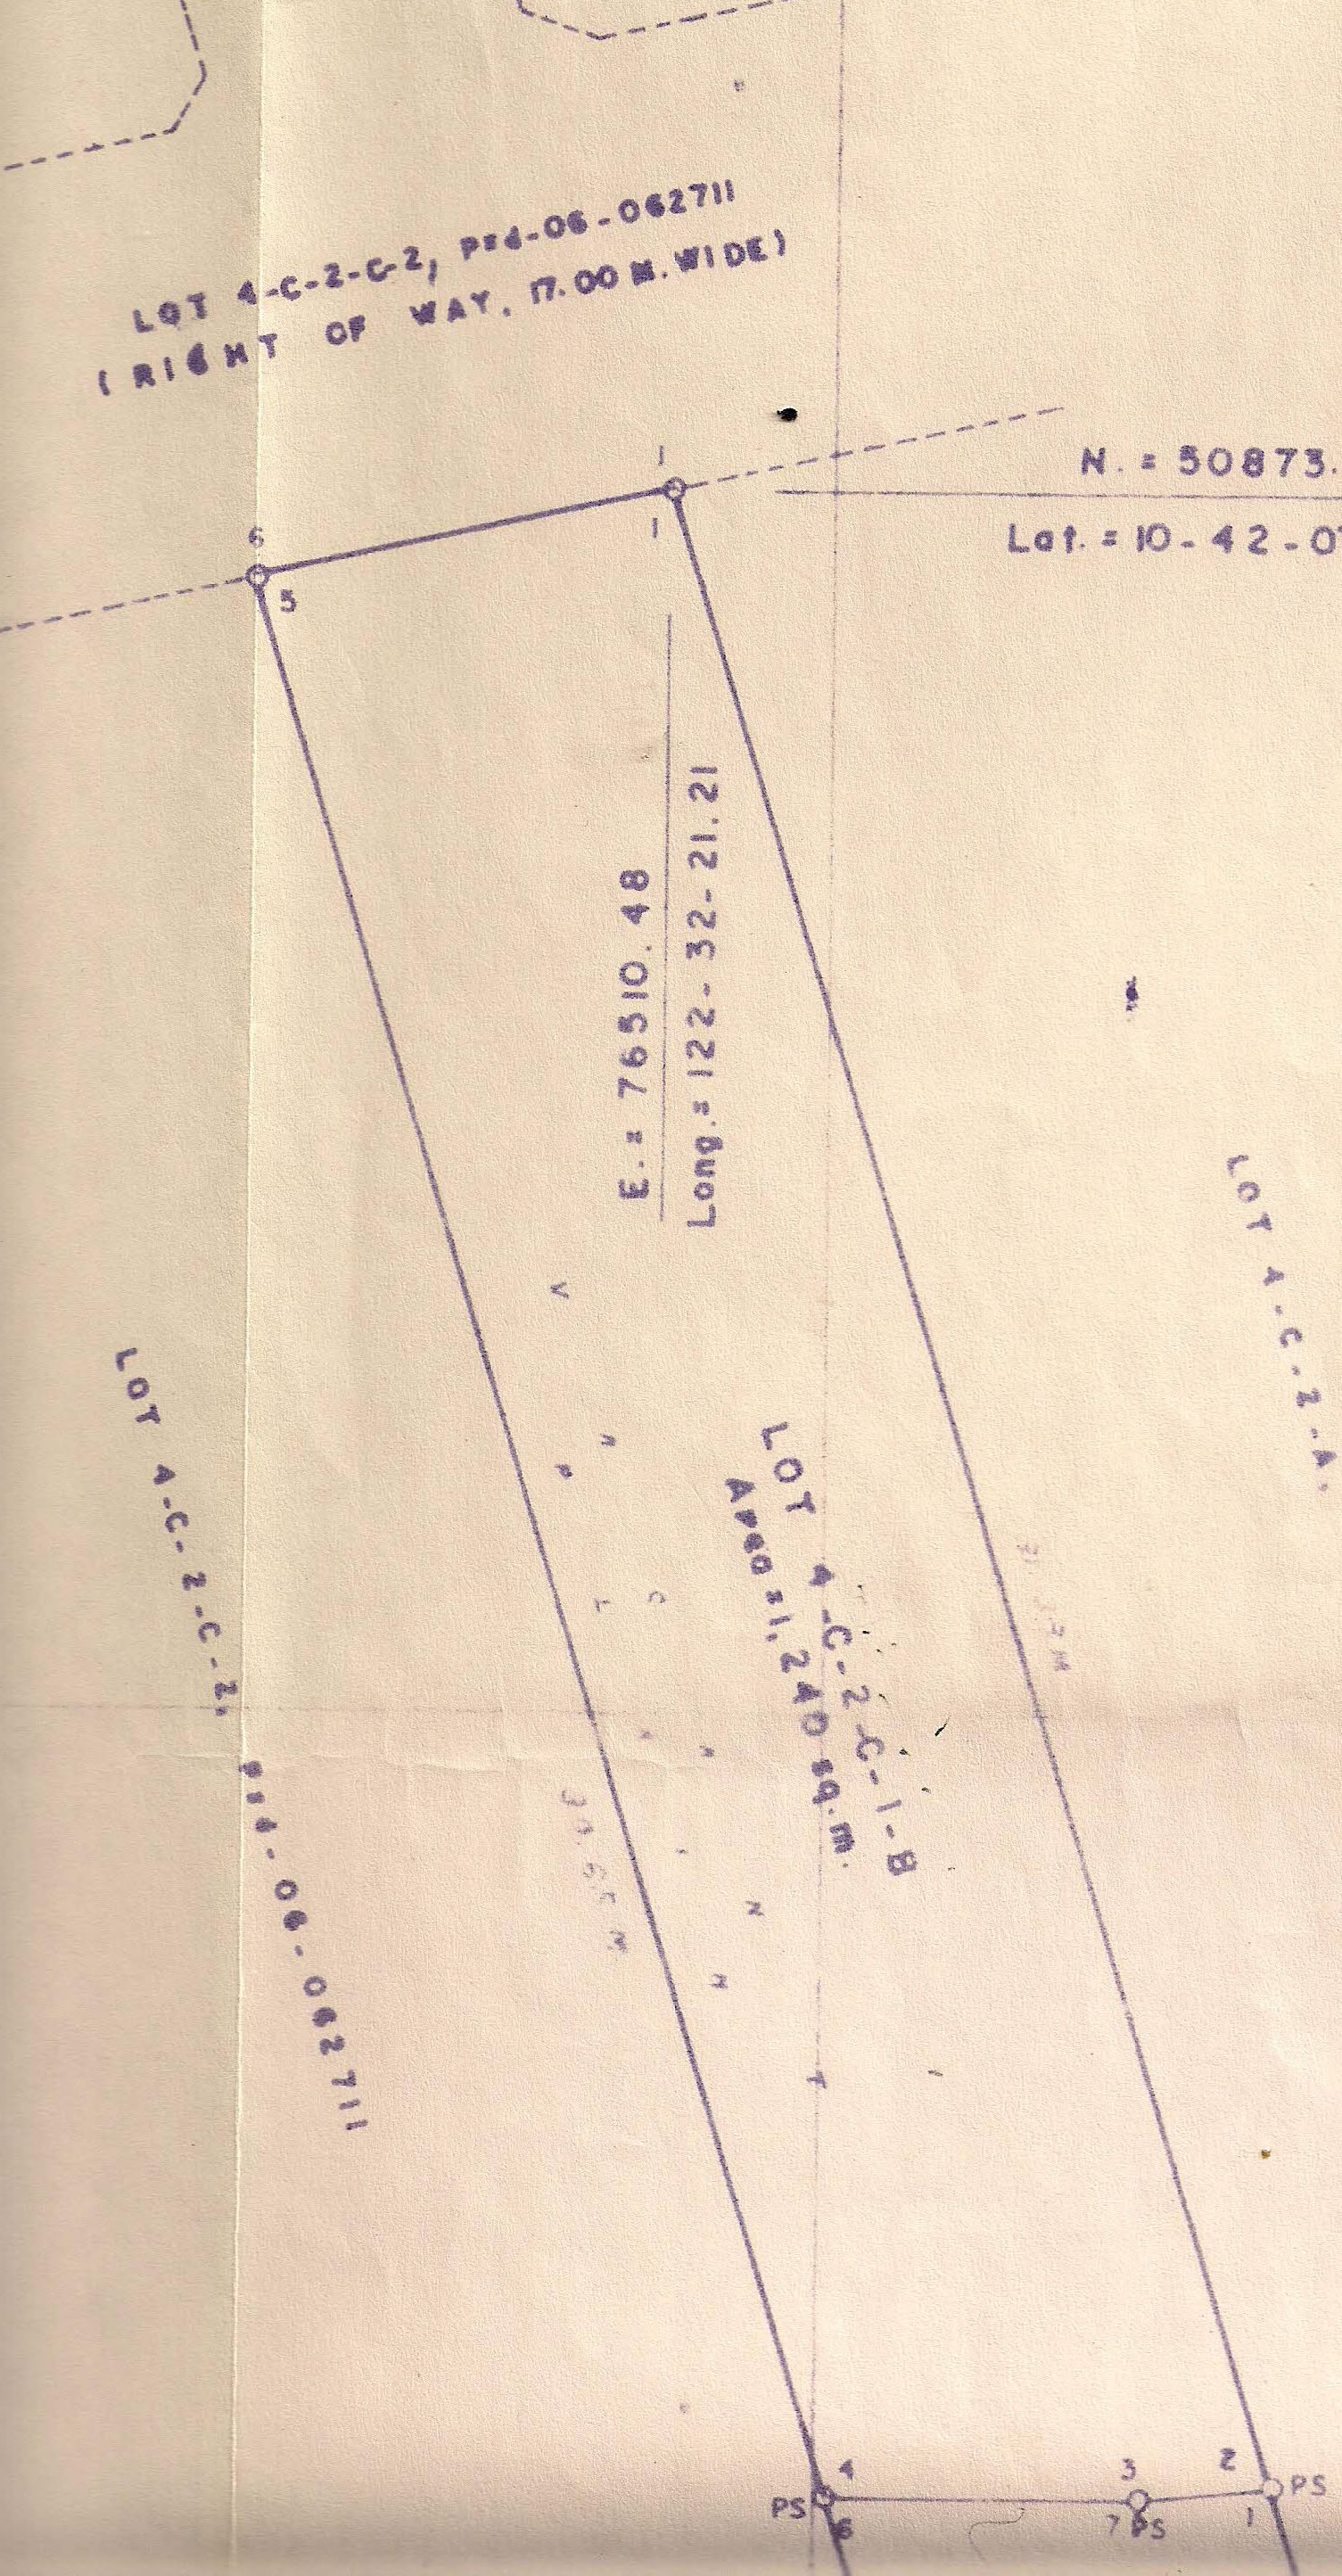 Property Lines for 1,240 sq. meter lot